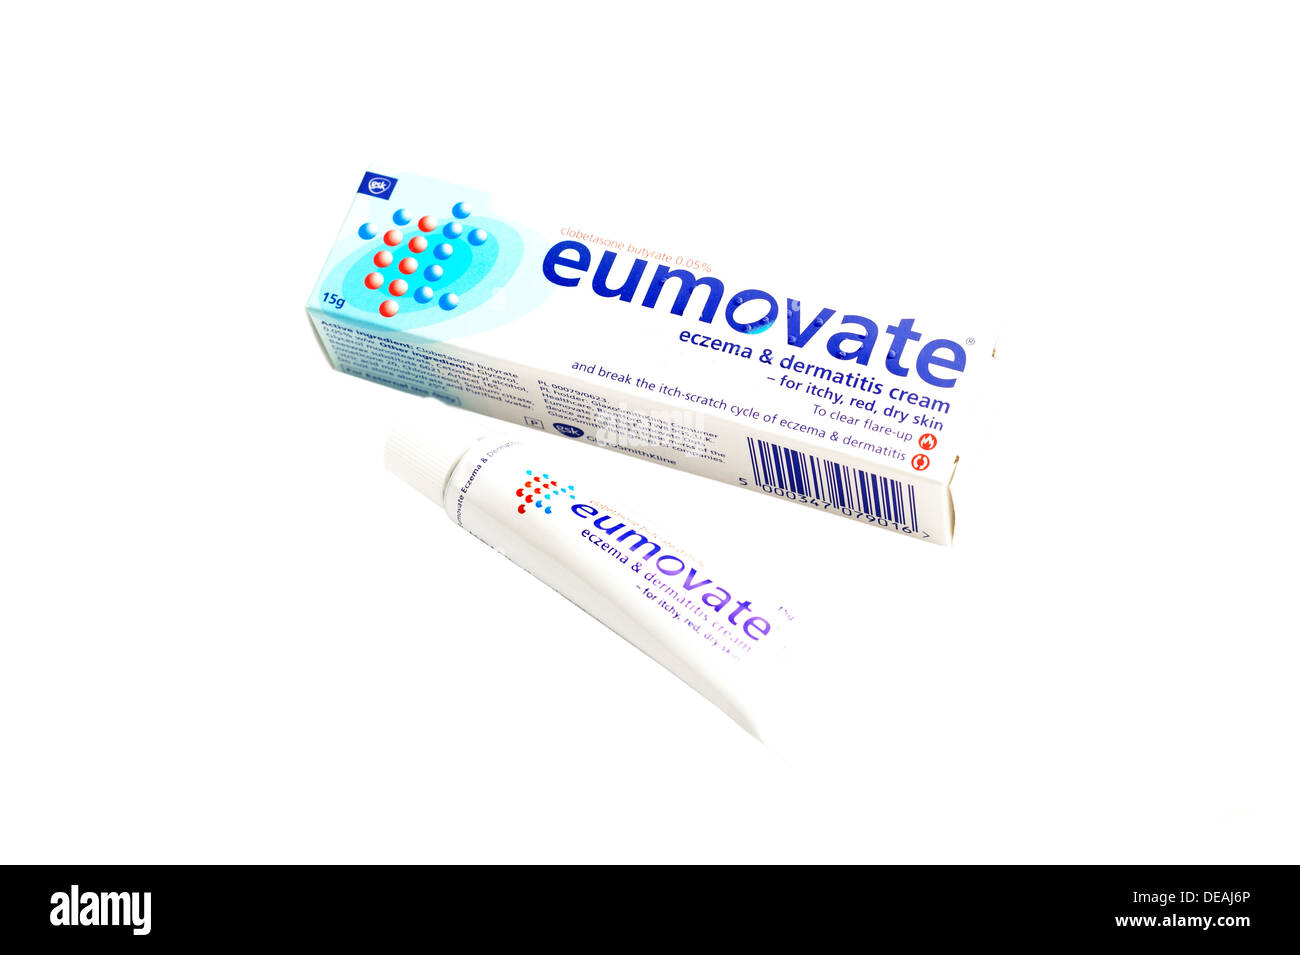 Eumovate Eczema & Dermatitis cream (clobetasone butyrate) steroid cream Stock Photo